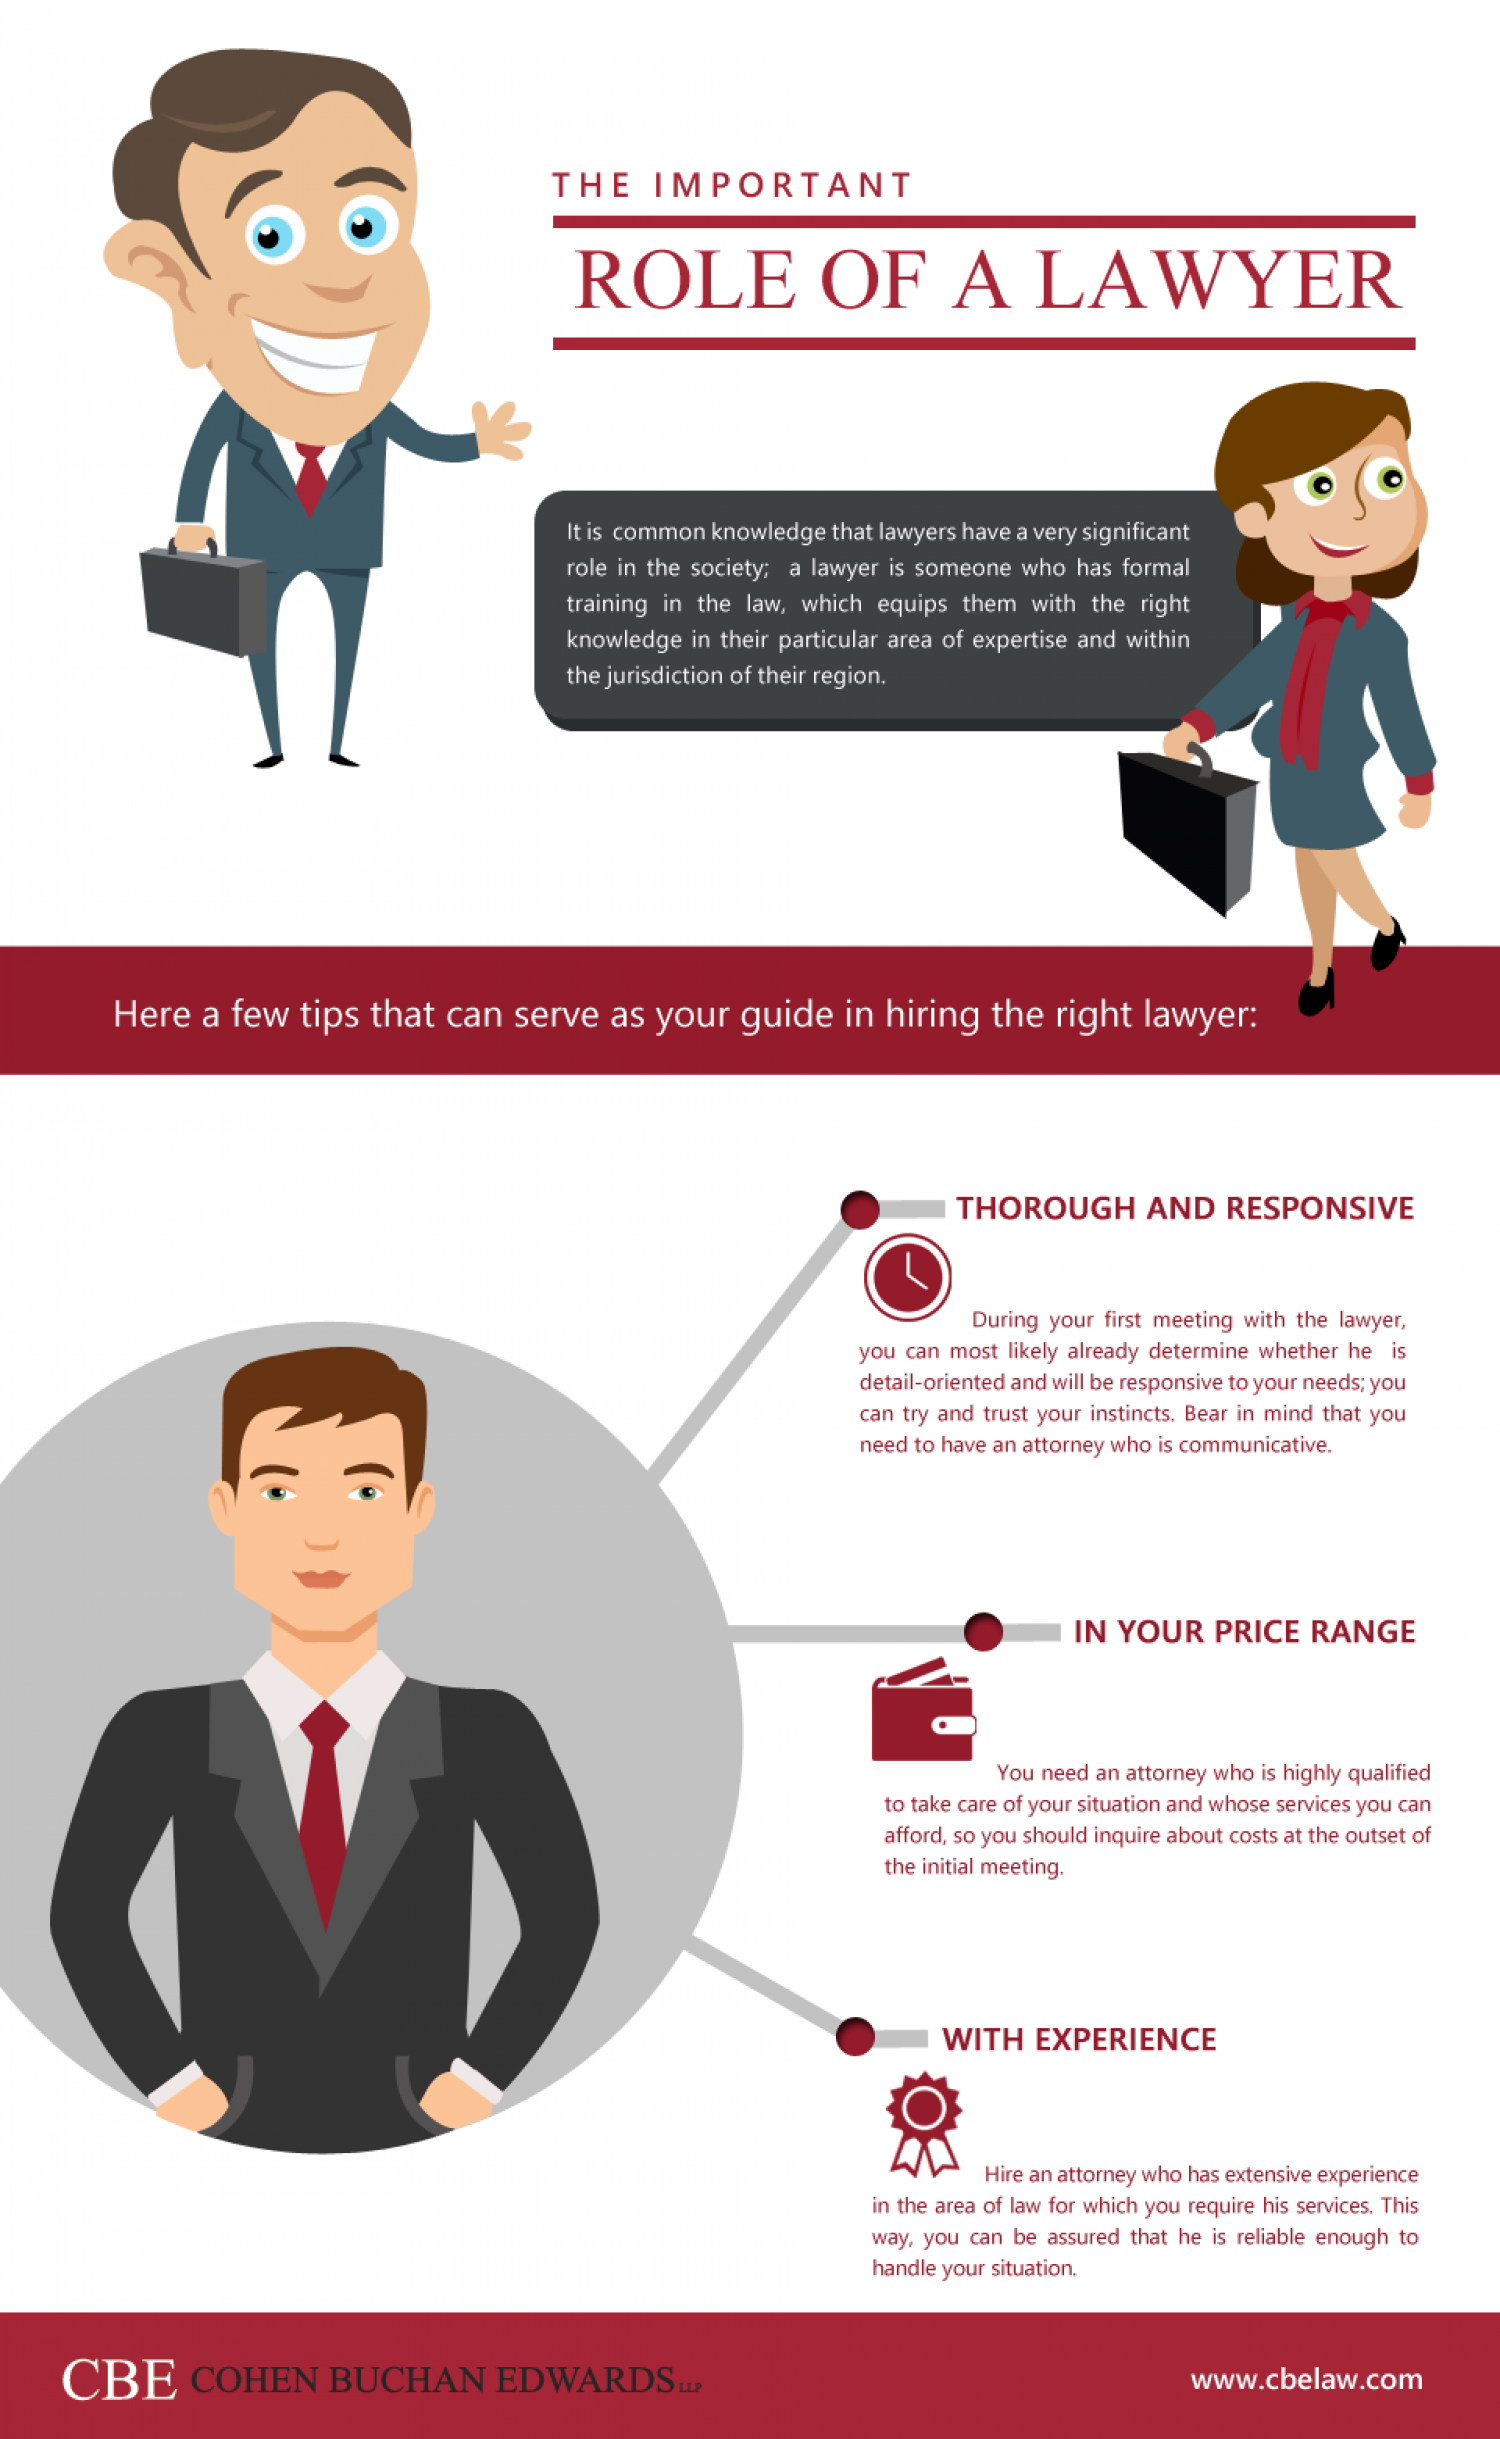 Lawyers are important because they legally represent their clients and assist them with a wide range of cases when a layperson could not, or cannot represent themselves. - http://www.cbelaw.com/ Infographic